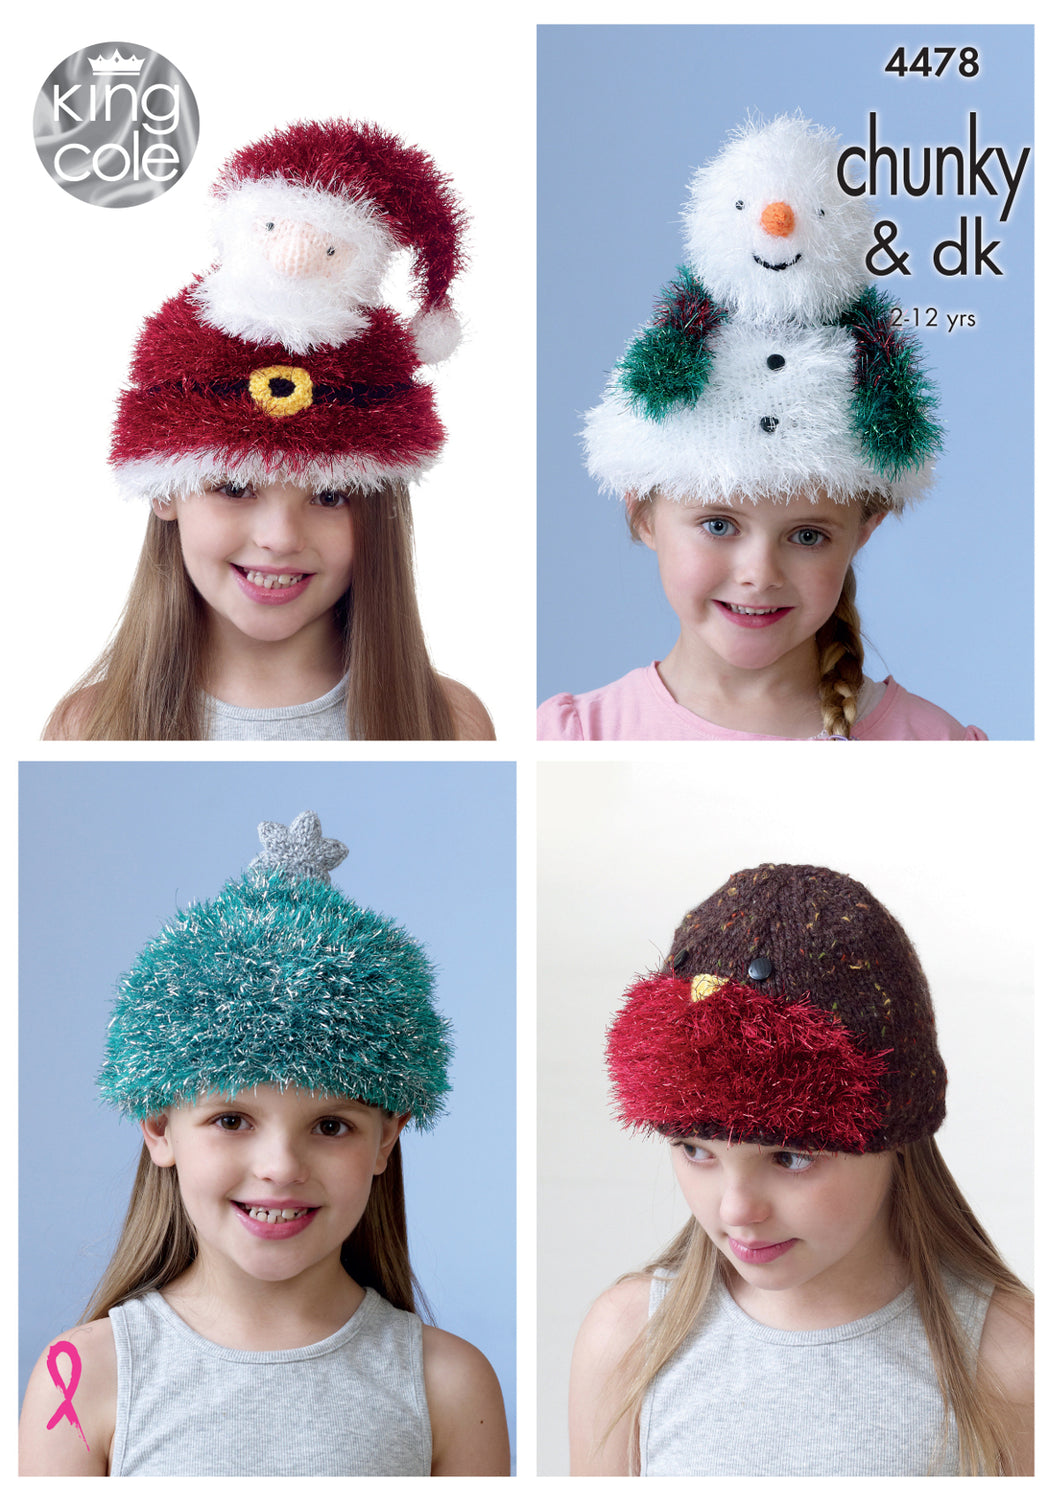 http://images.esellerpro.com/2278/I/122/498/king-cole-tinsel-chunky-knitting-pattern-childrens-festive-christmas-novelty-hats-4478.jpg